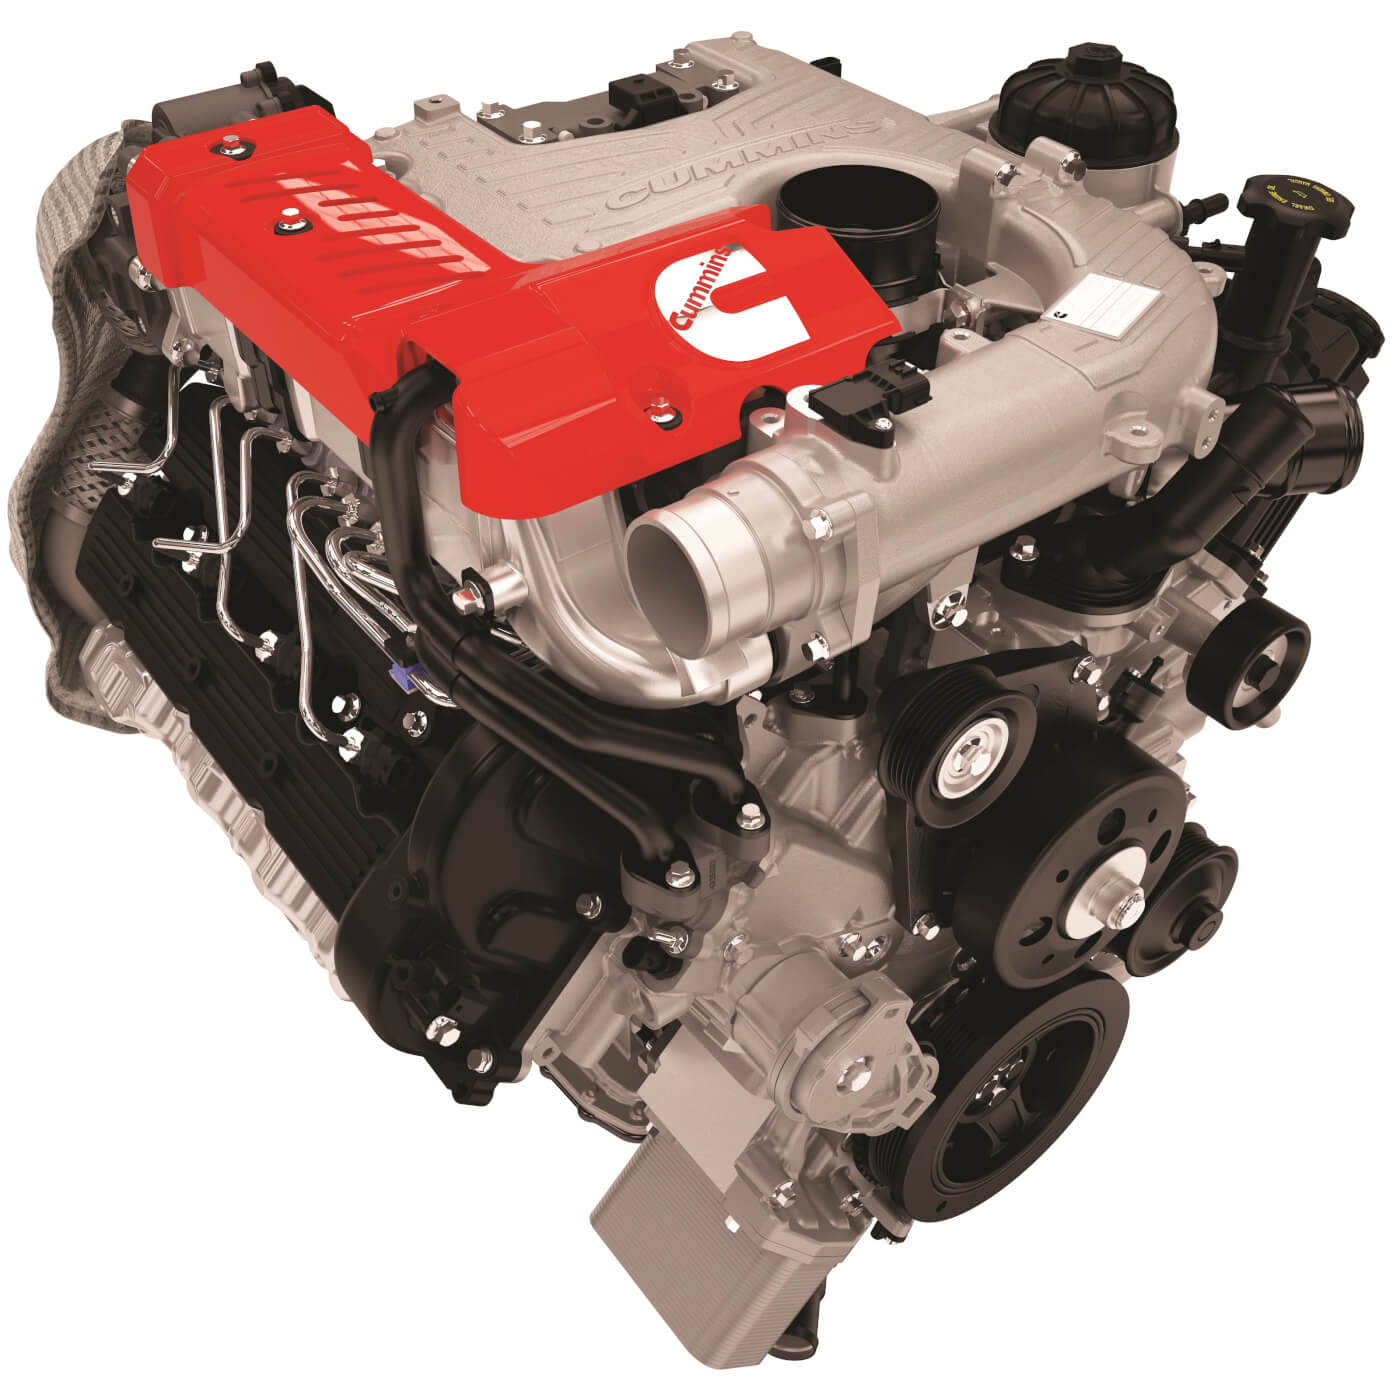 The 5.0L V8 Turbo Diesel brings together a compacted graphite iron (CGI) cylinder block, forged steel crankshaft, high-strength aluminum alloy heads, and composite valve covers to offer maximum durability in a lightweight package. These features, along with dual overhead camshafts, also contribute to the excellent noise, vibration and harshness (NVH) characteristics achieved by the 5.0L V8 turbo diesel.